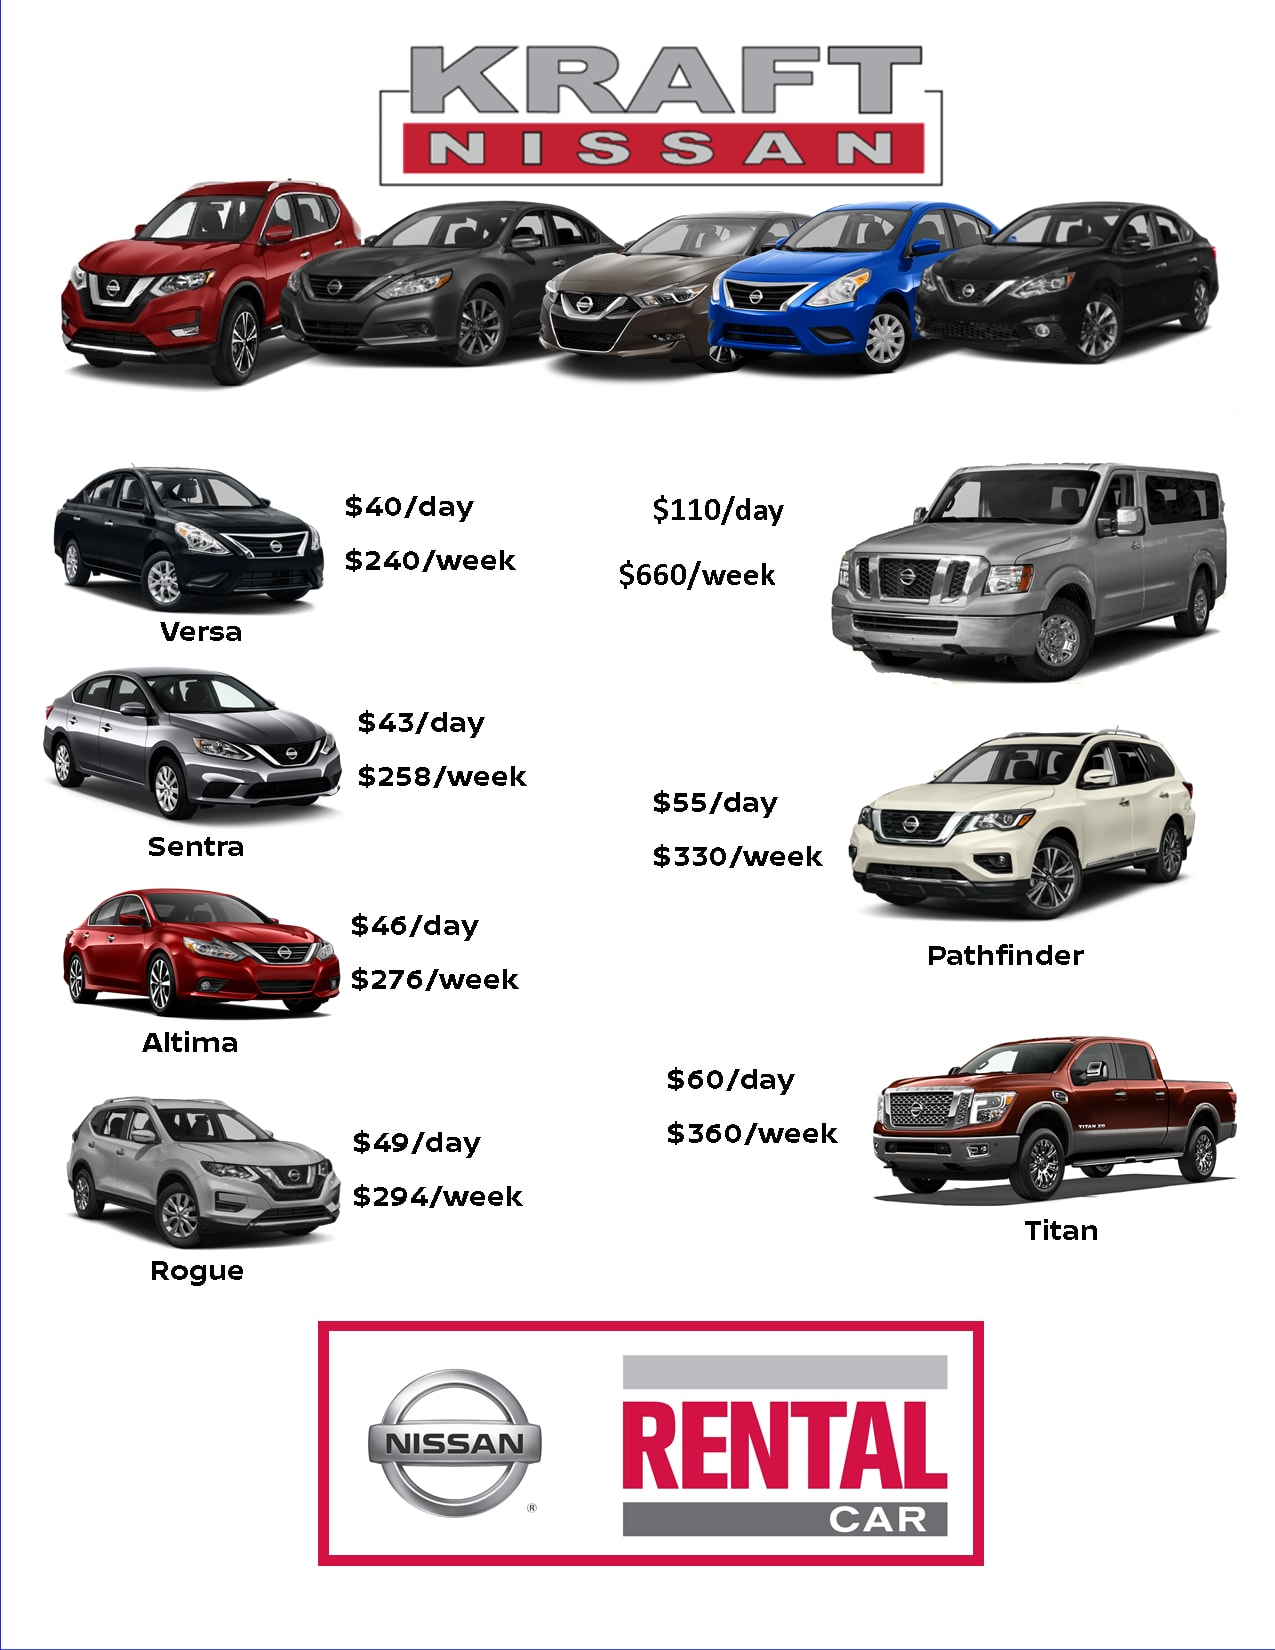 Contact. Kraft Nissan Of Tallahassee